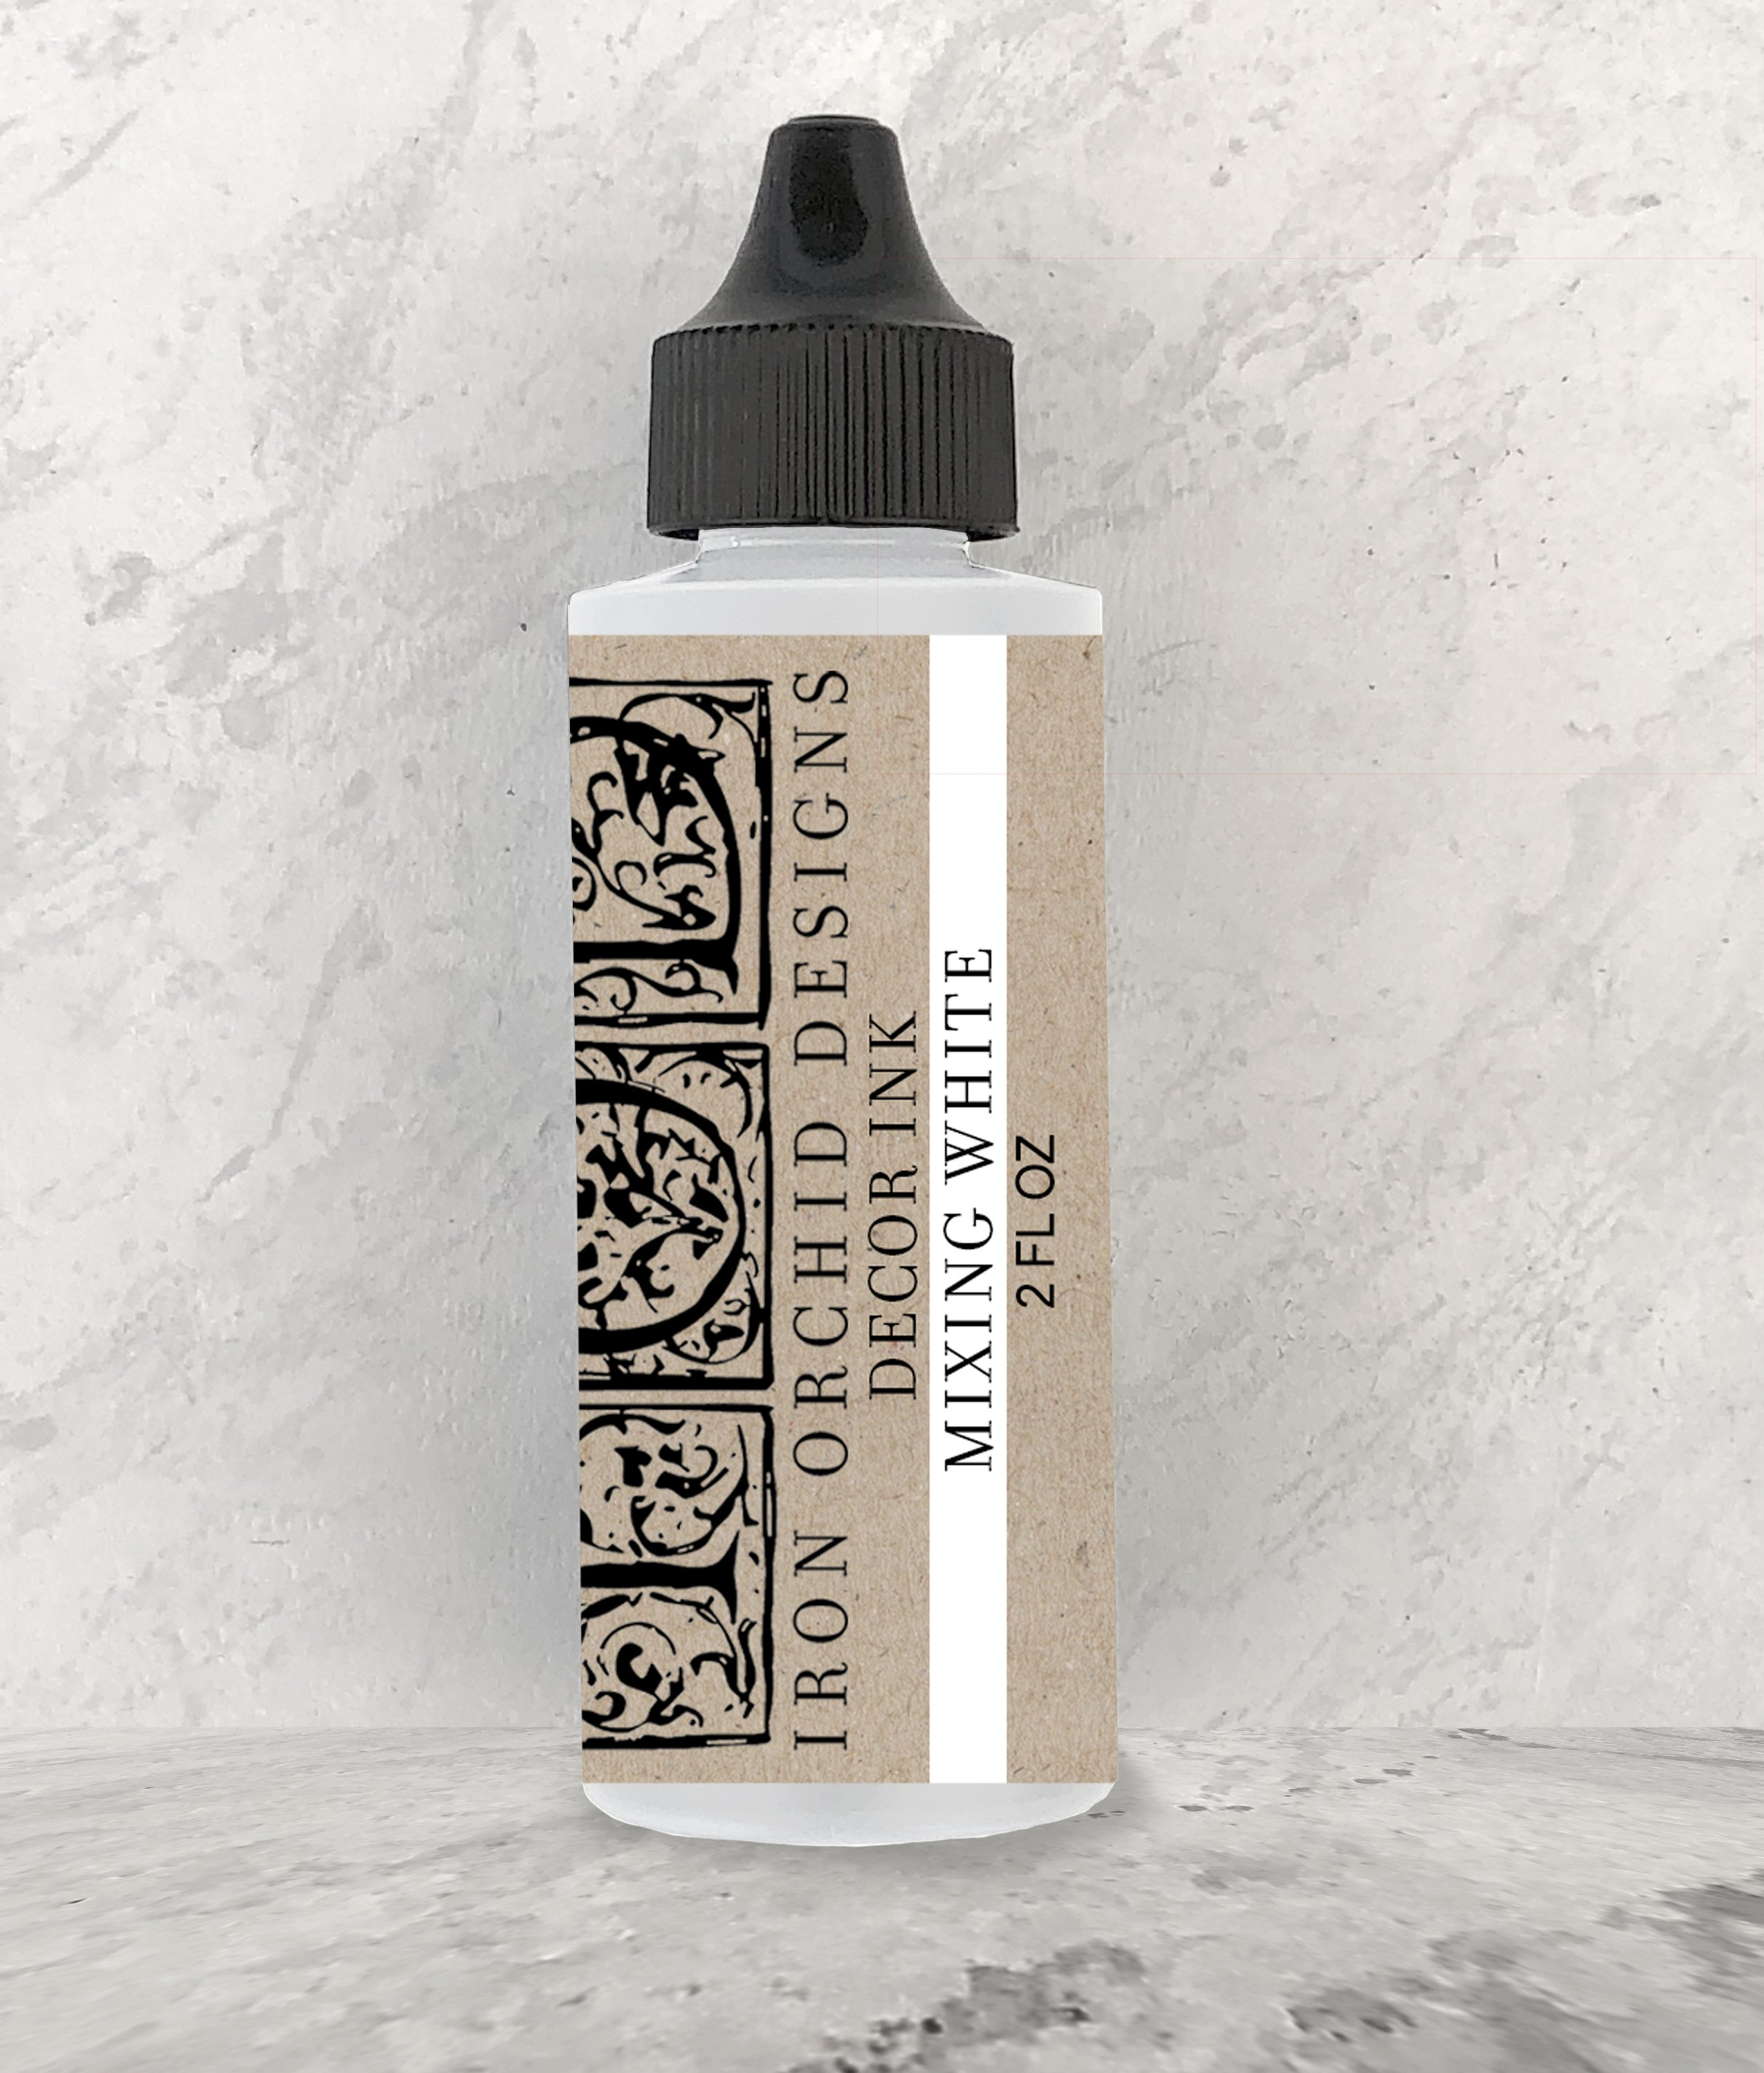 Have fun adding texture to your projects with our fun Iron Orchid Designs - Decor Ink - Mixing White | www.raggedy-bits.com | #raggedybits #IOD #DecorInk #MixingWhite #texture